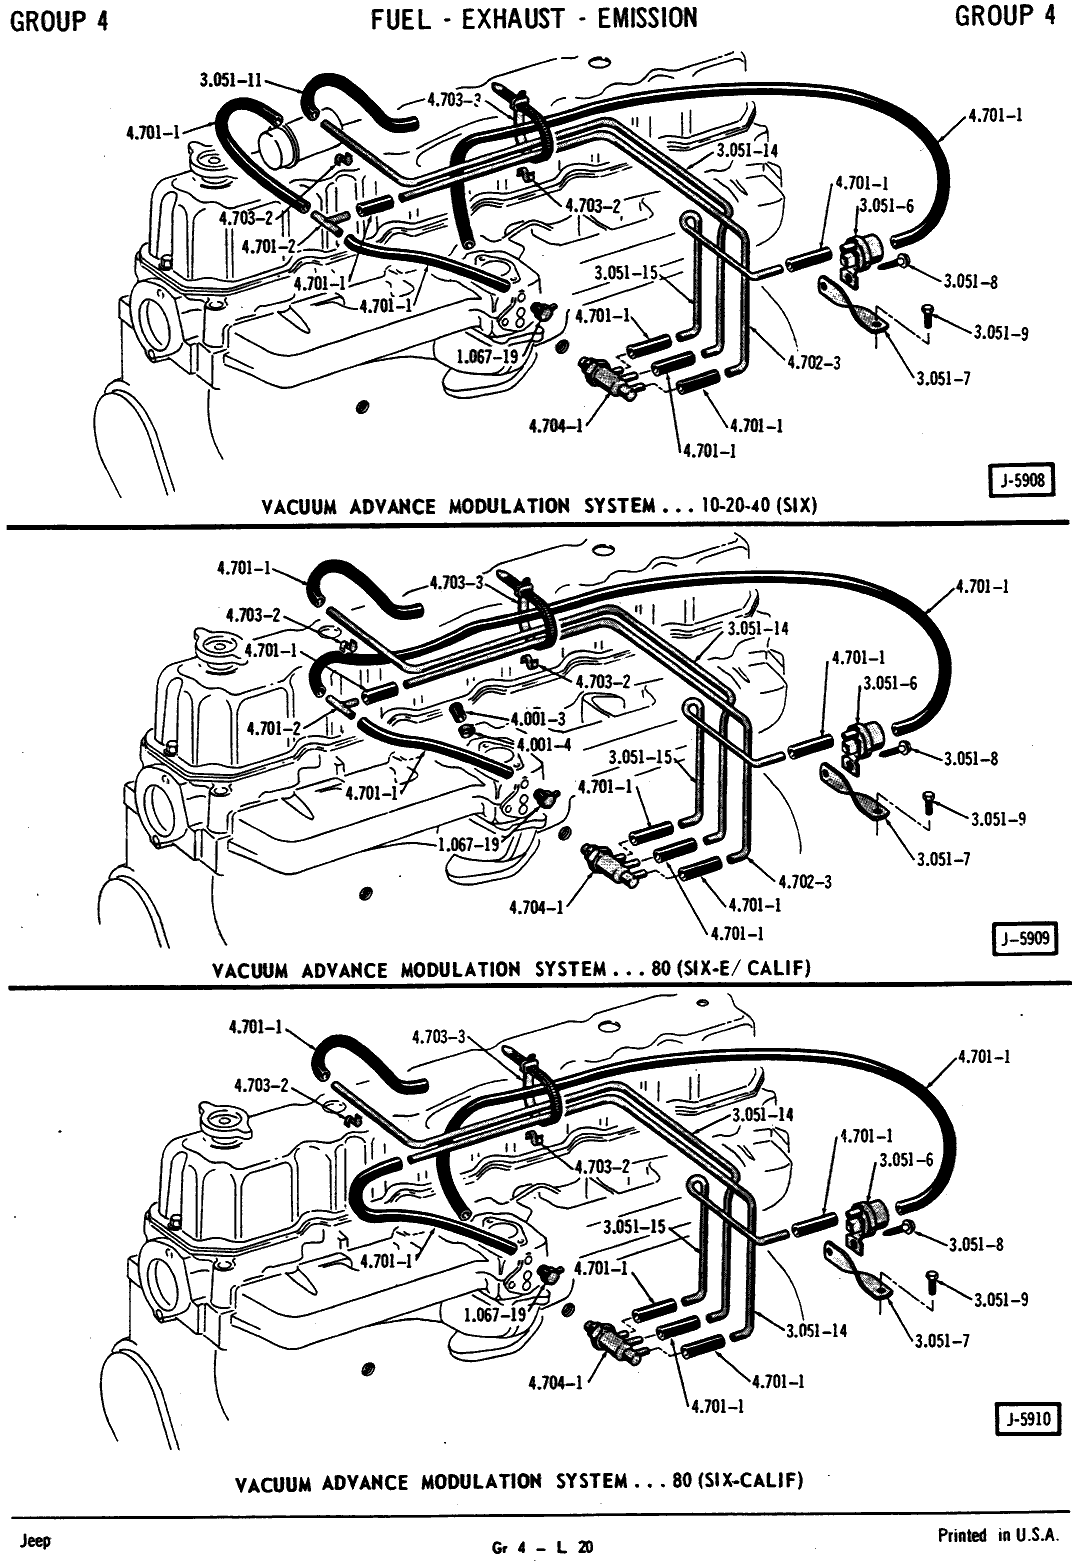 Jeep Wrangler 3 8 Engine Diagram Wiring Essig Pontiac Grand Prix Distributor Vacuum Advance Pinterest Xj And 38